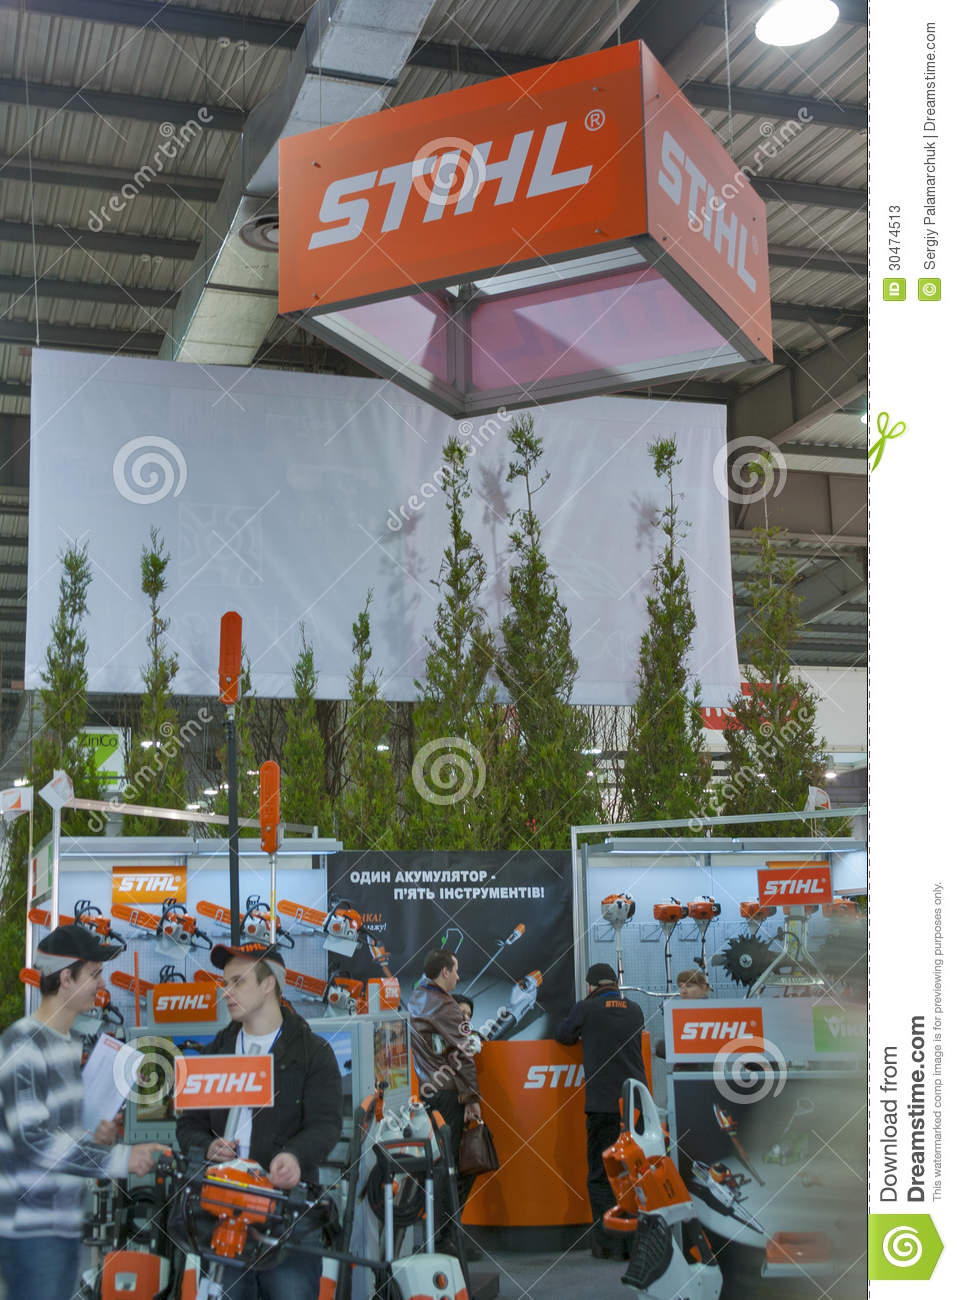 Stihl Germany Company Booth Editorial Stock Photo - Image of